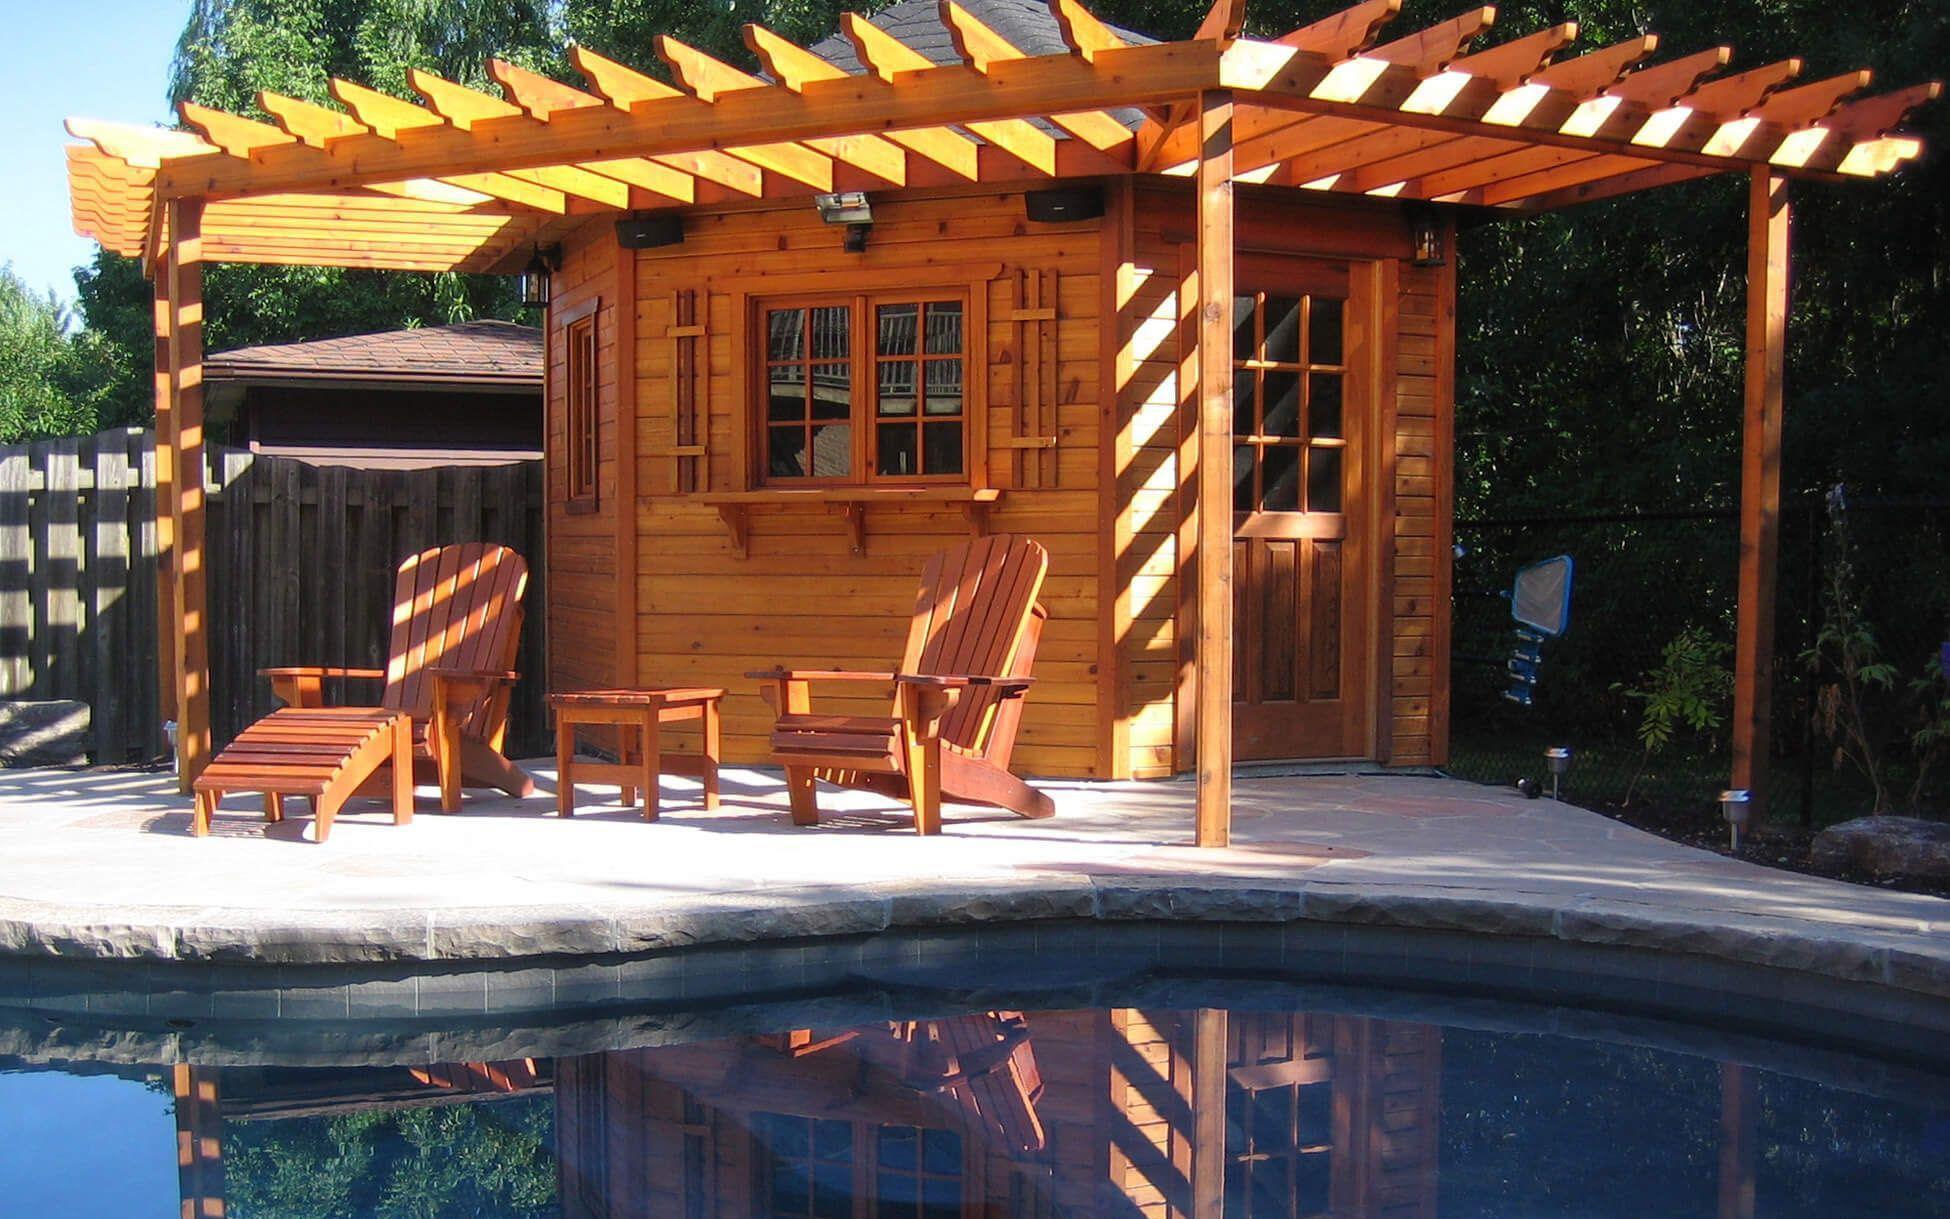 Our 10 ft. Catalina pool cabana with trellis to match the roofline. ID number 47202.